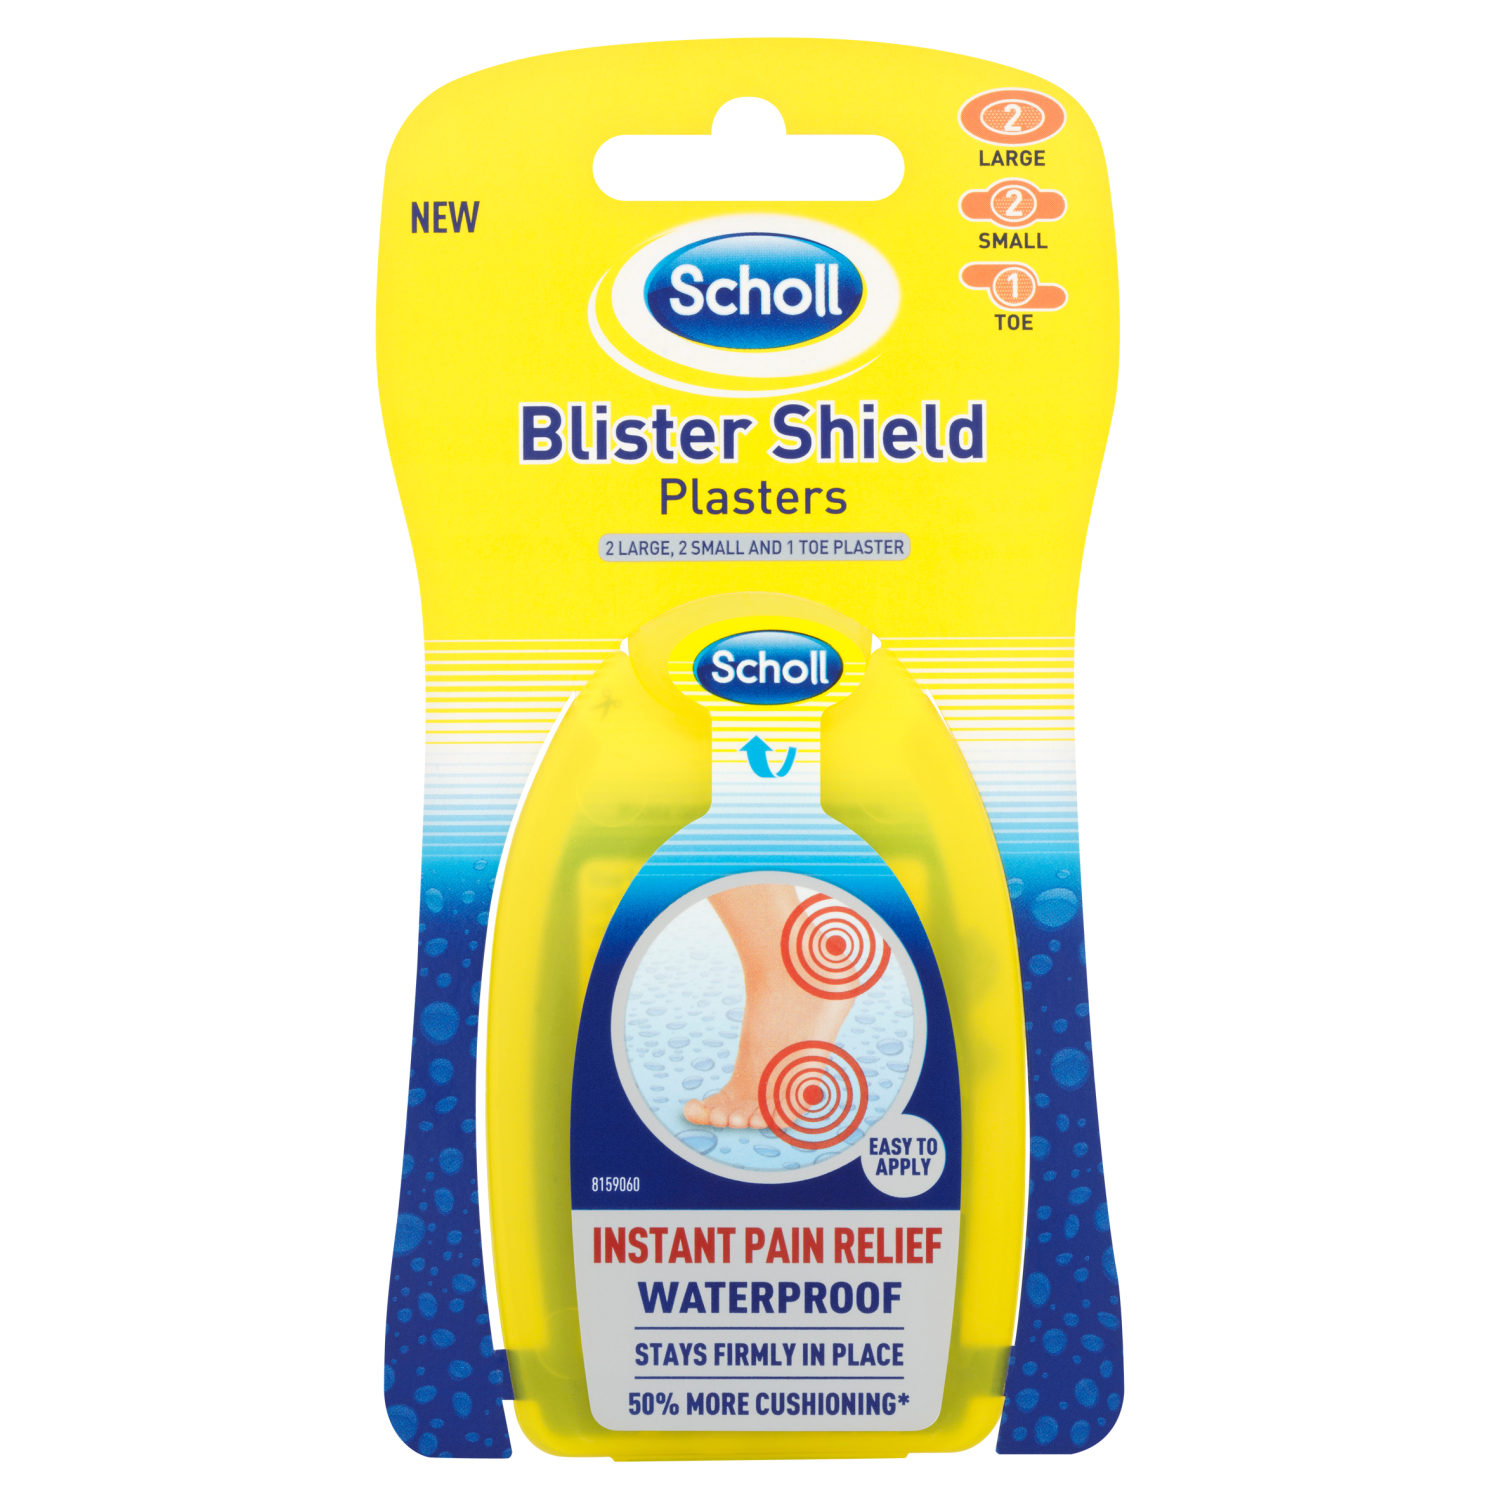 Scholl Blister Shield Plasters Mixed Large & Small